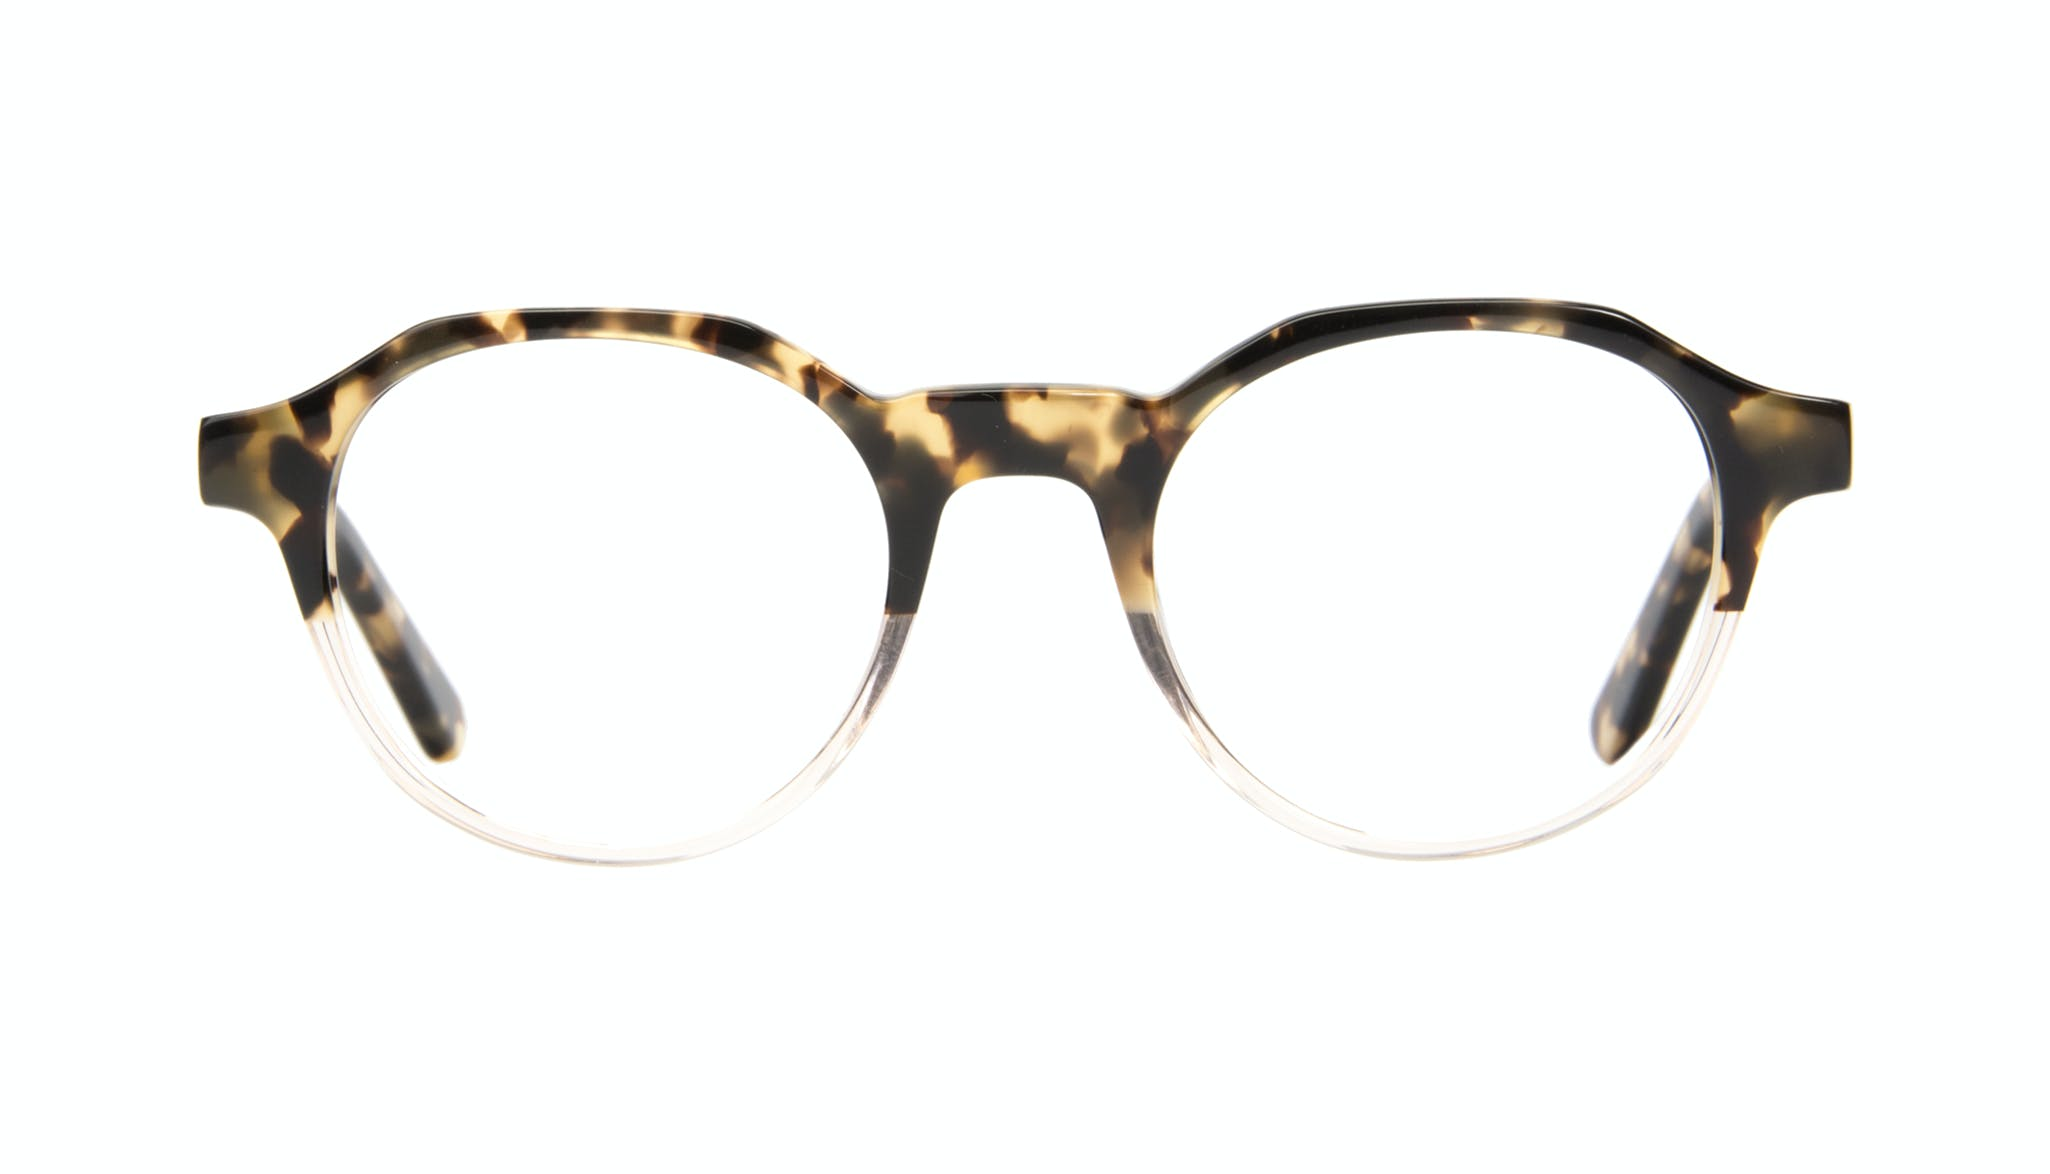 Affordable Fashion Glasses Round Eyeglasses Men Form Golden Tort Front